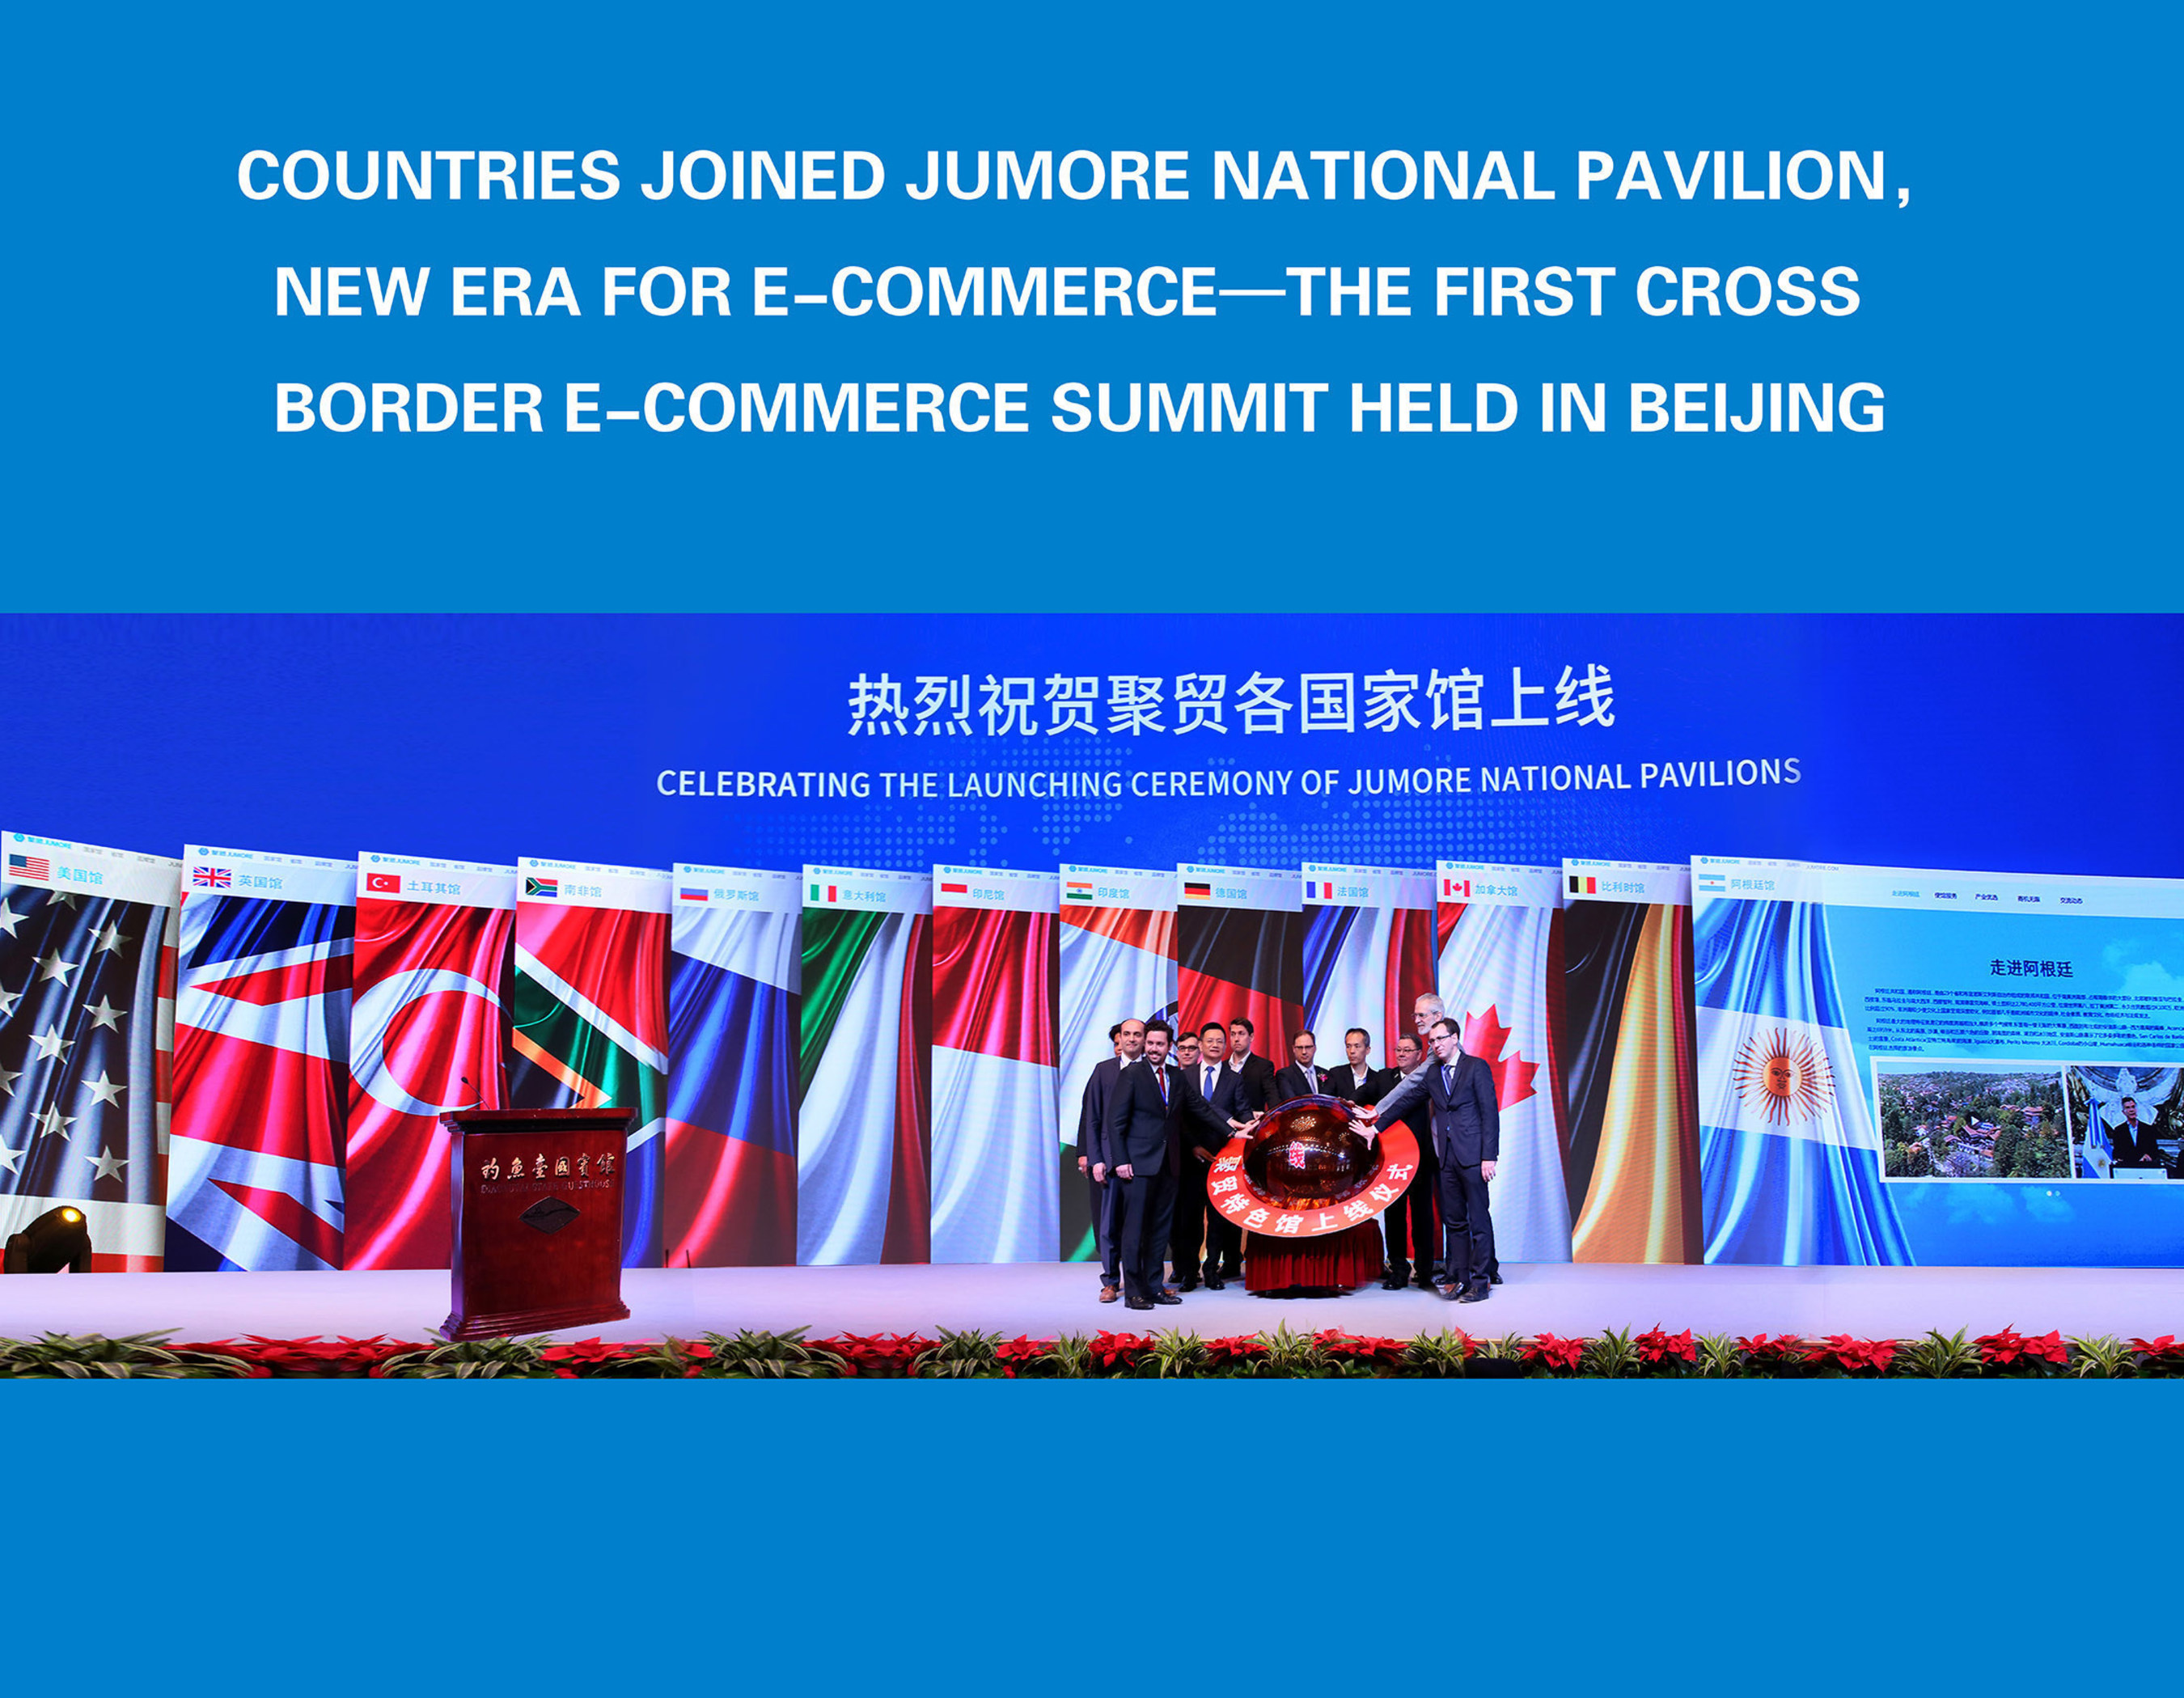 JUMORE National Pavilion Launching Ceremony